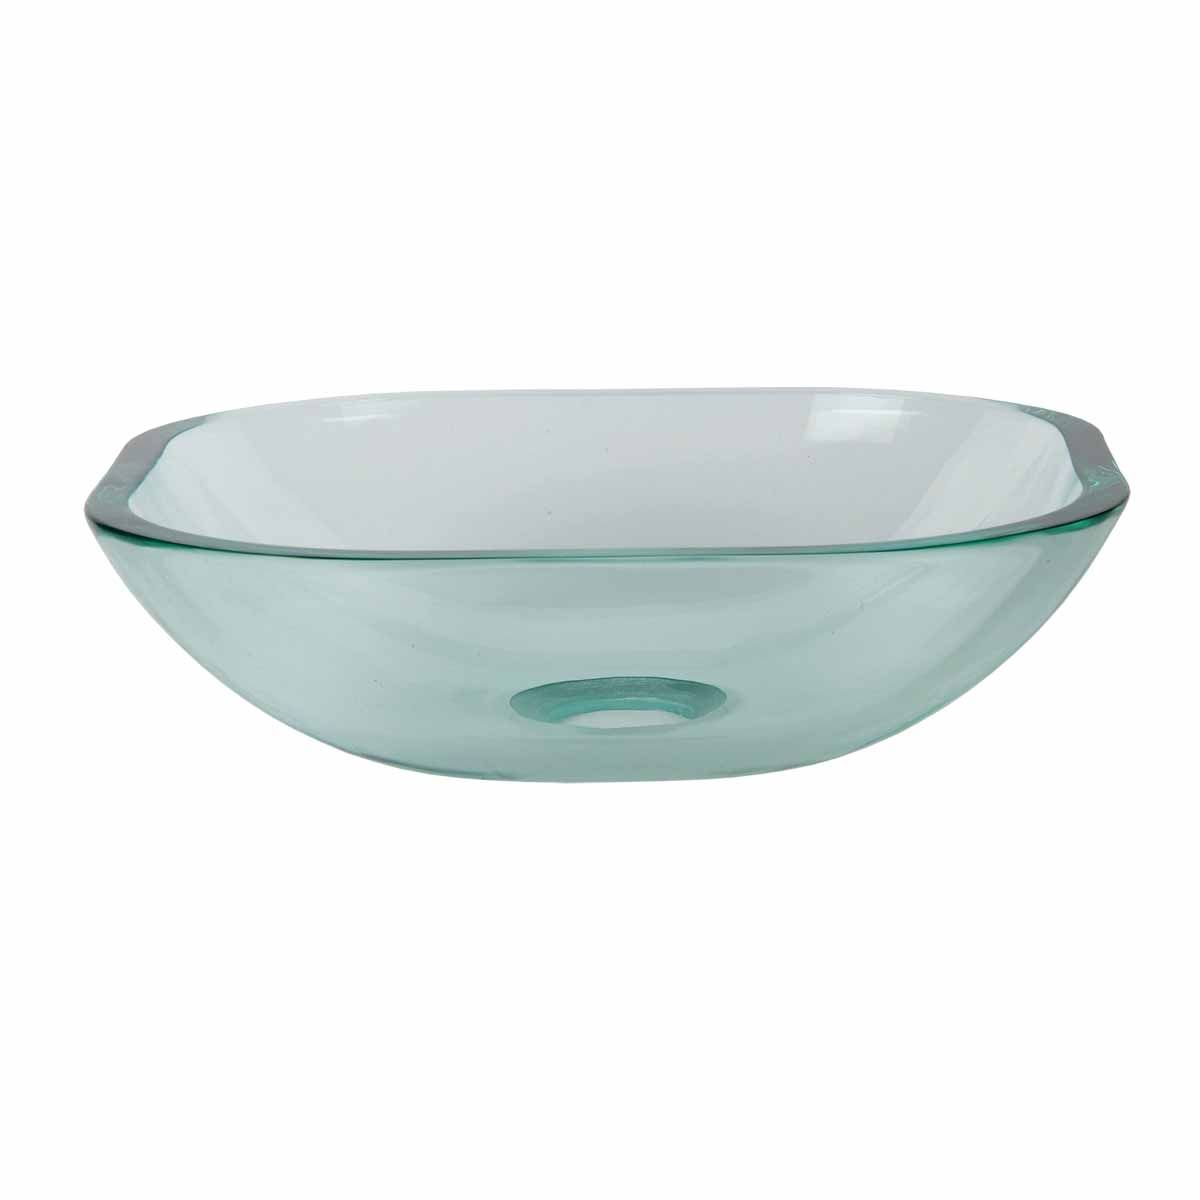 Glass Sink Bowls Item 17622 Mini Bathroom Glass Vessel Sink Square Small